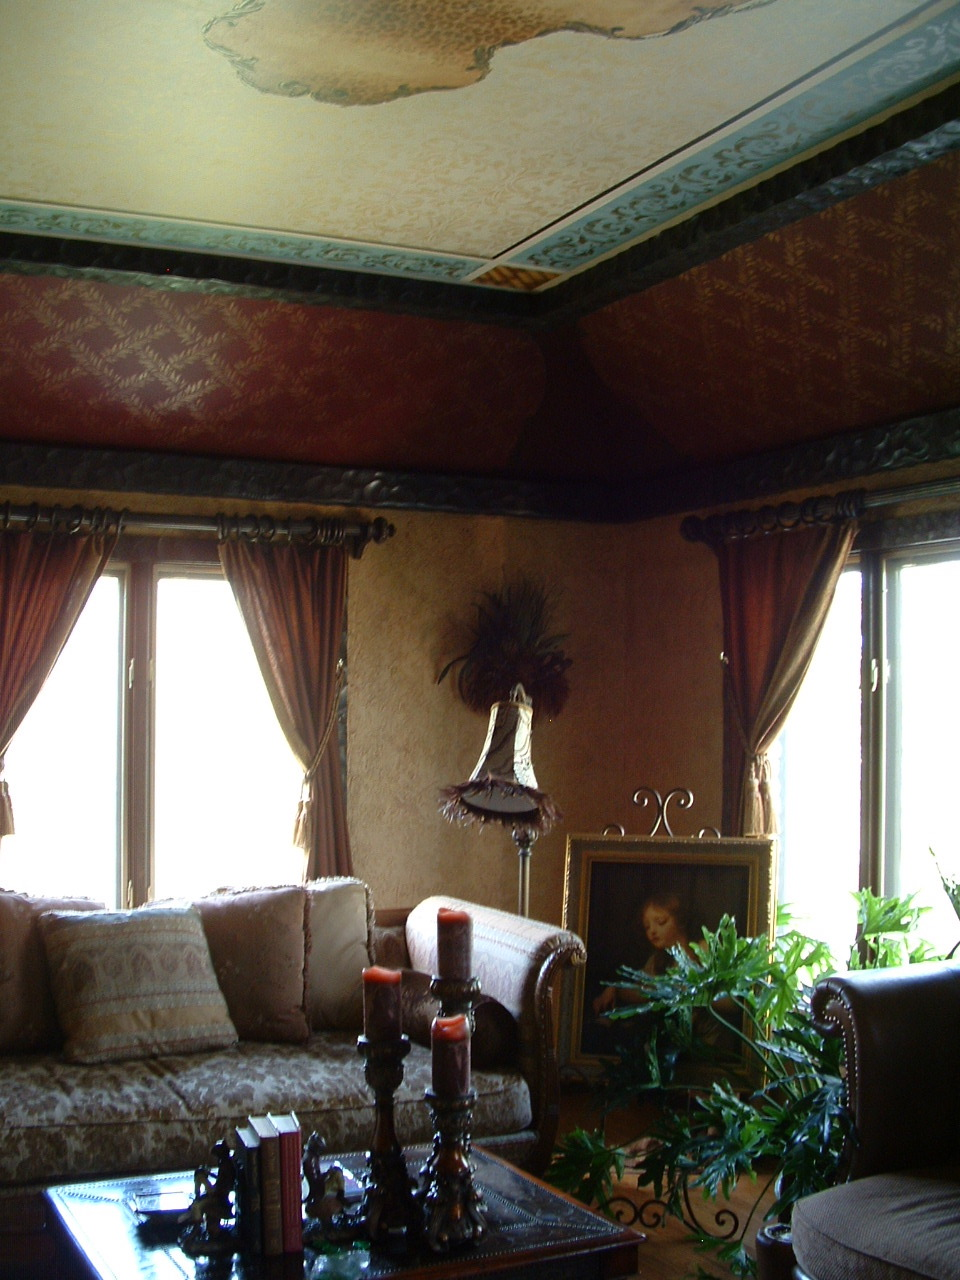 intricate-ceiling-patterns.JPG